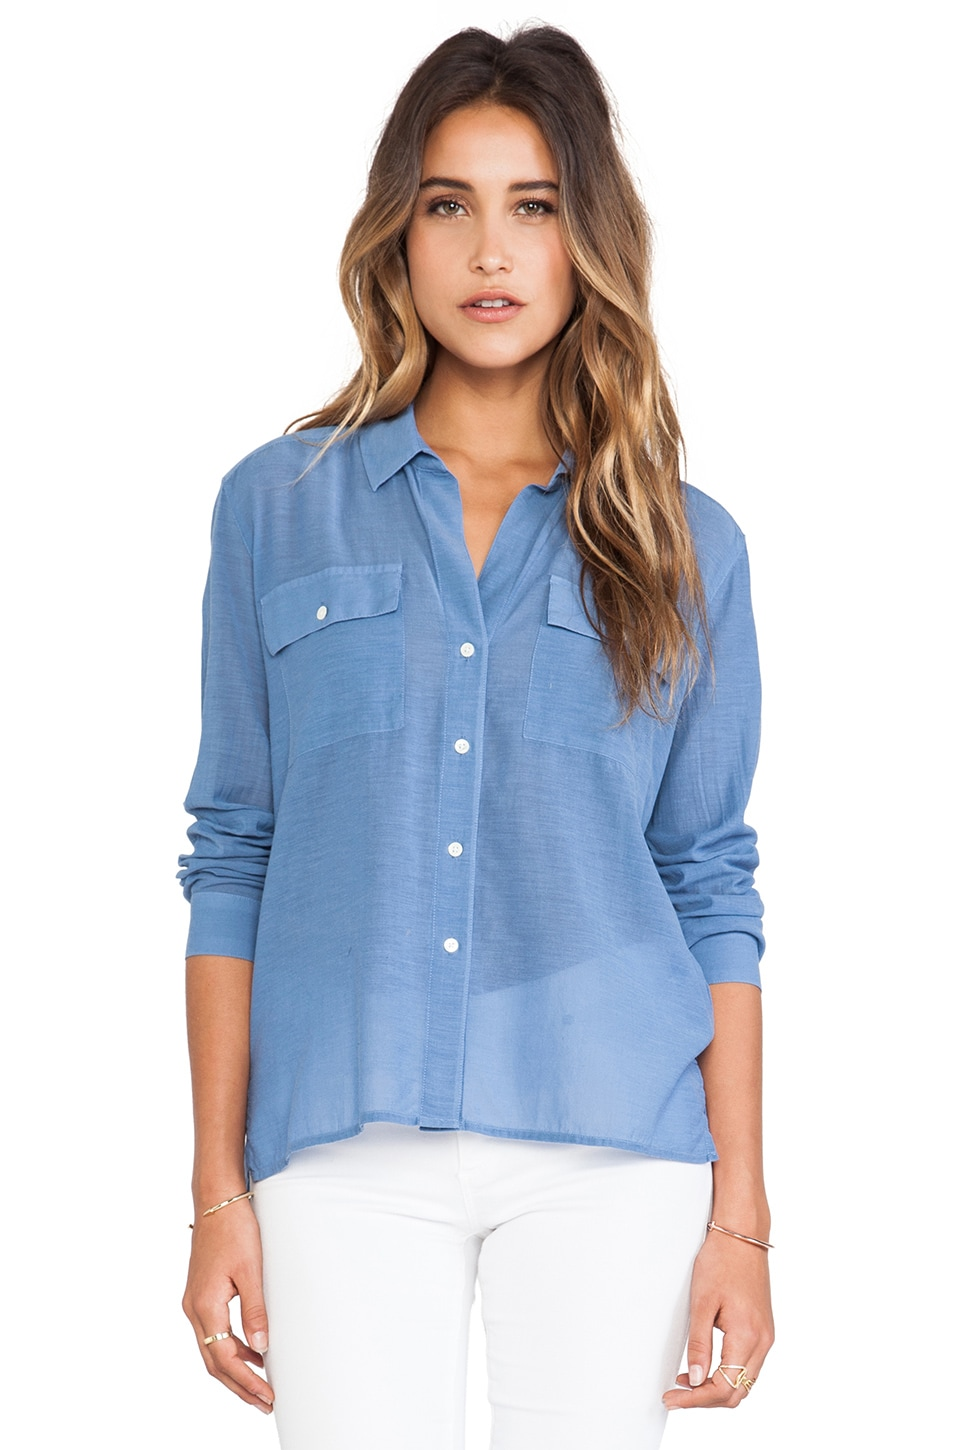 James Perse Silk Blend Pocket Shirt in Denim